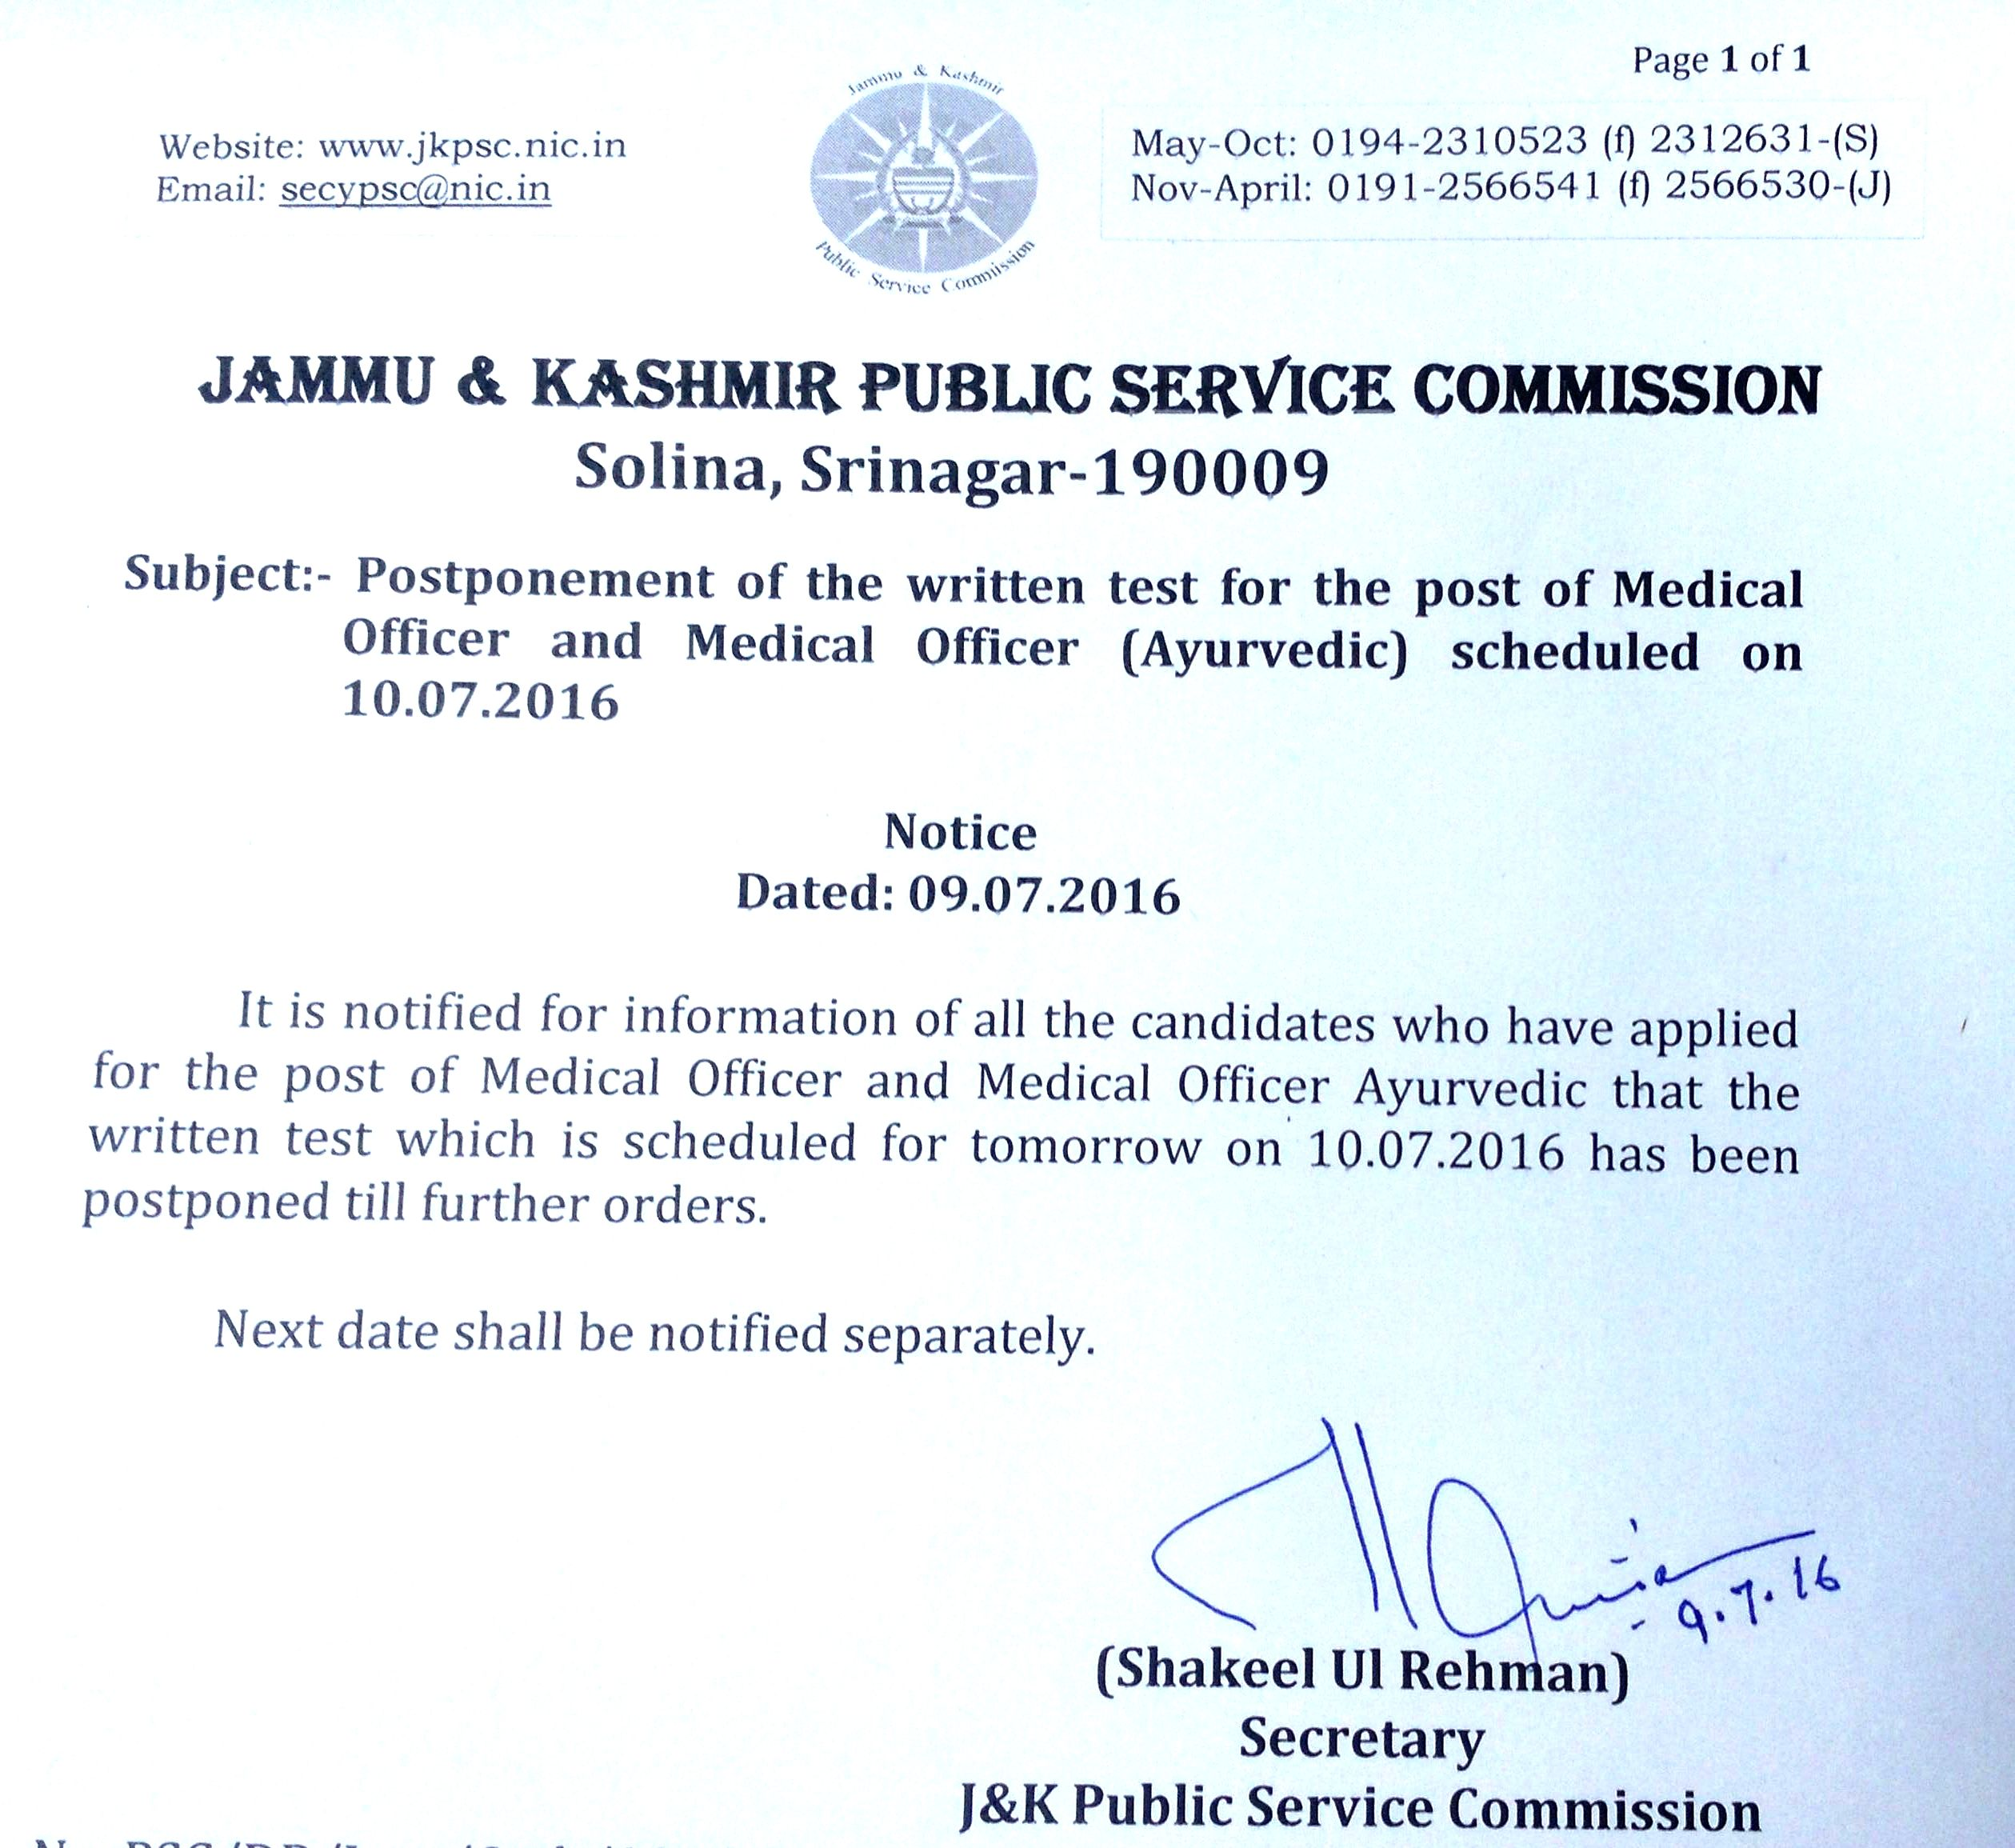 welcome to the jammu and kashmir public service commission postponement of the written test for the post of medical officer and medical officer ayurvedic scheduled on 10 07 2016 sunday till further